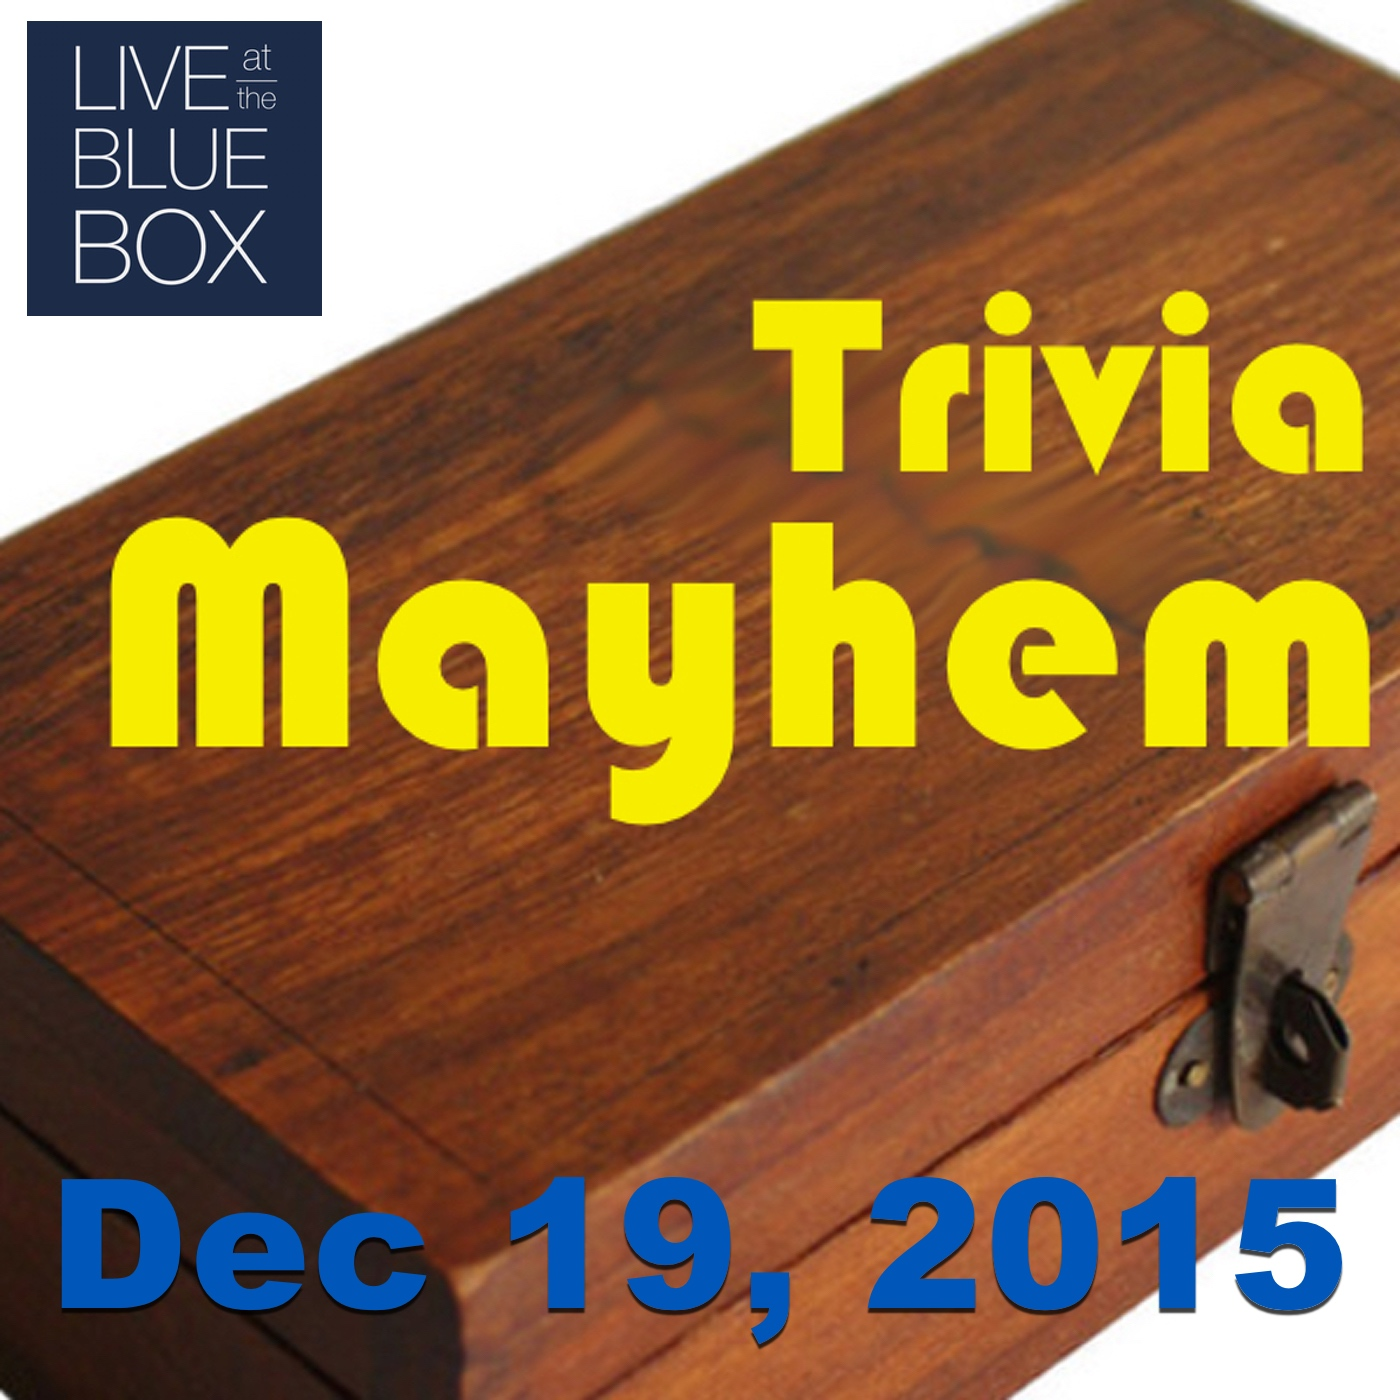 Trivia Mayhem 12-19-15 Live at the Blue Box